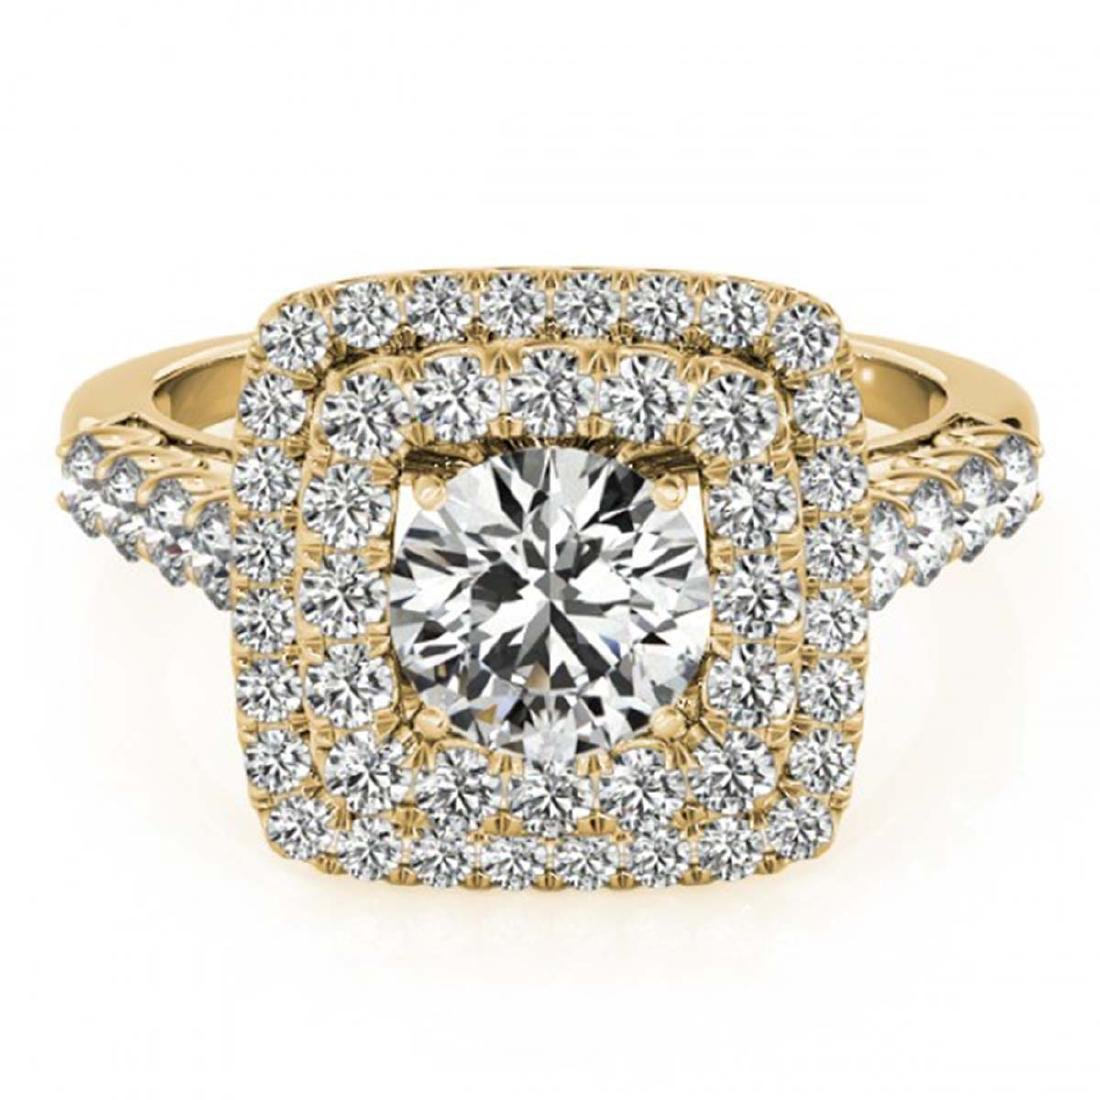 2.3 ctw VS/SI Diamond Halo Ring 18K Yellow Gold -